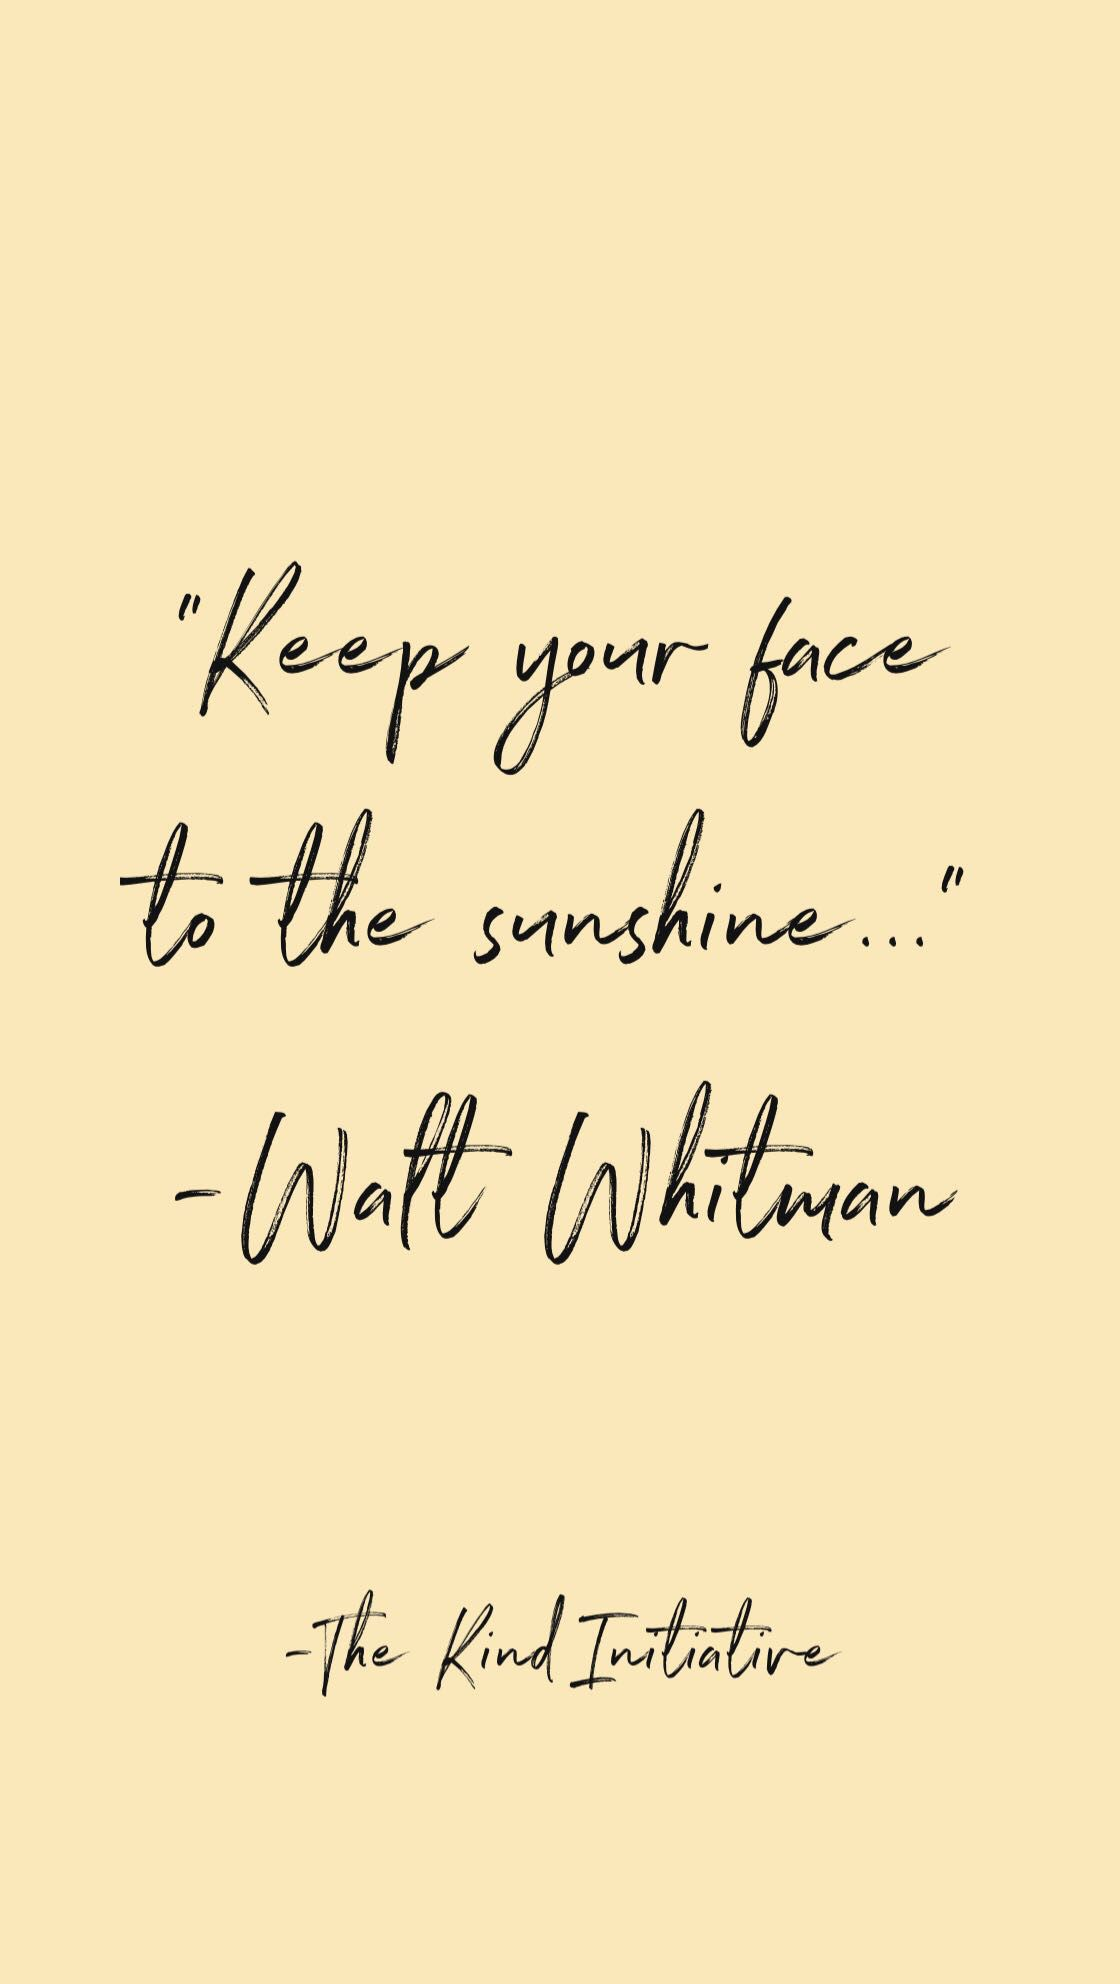 Inspirational Quotes Inspirational Quotes Self Love Motivation Truth Gardening Quotes Inspirational Sunshine Quotes Face Quotes